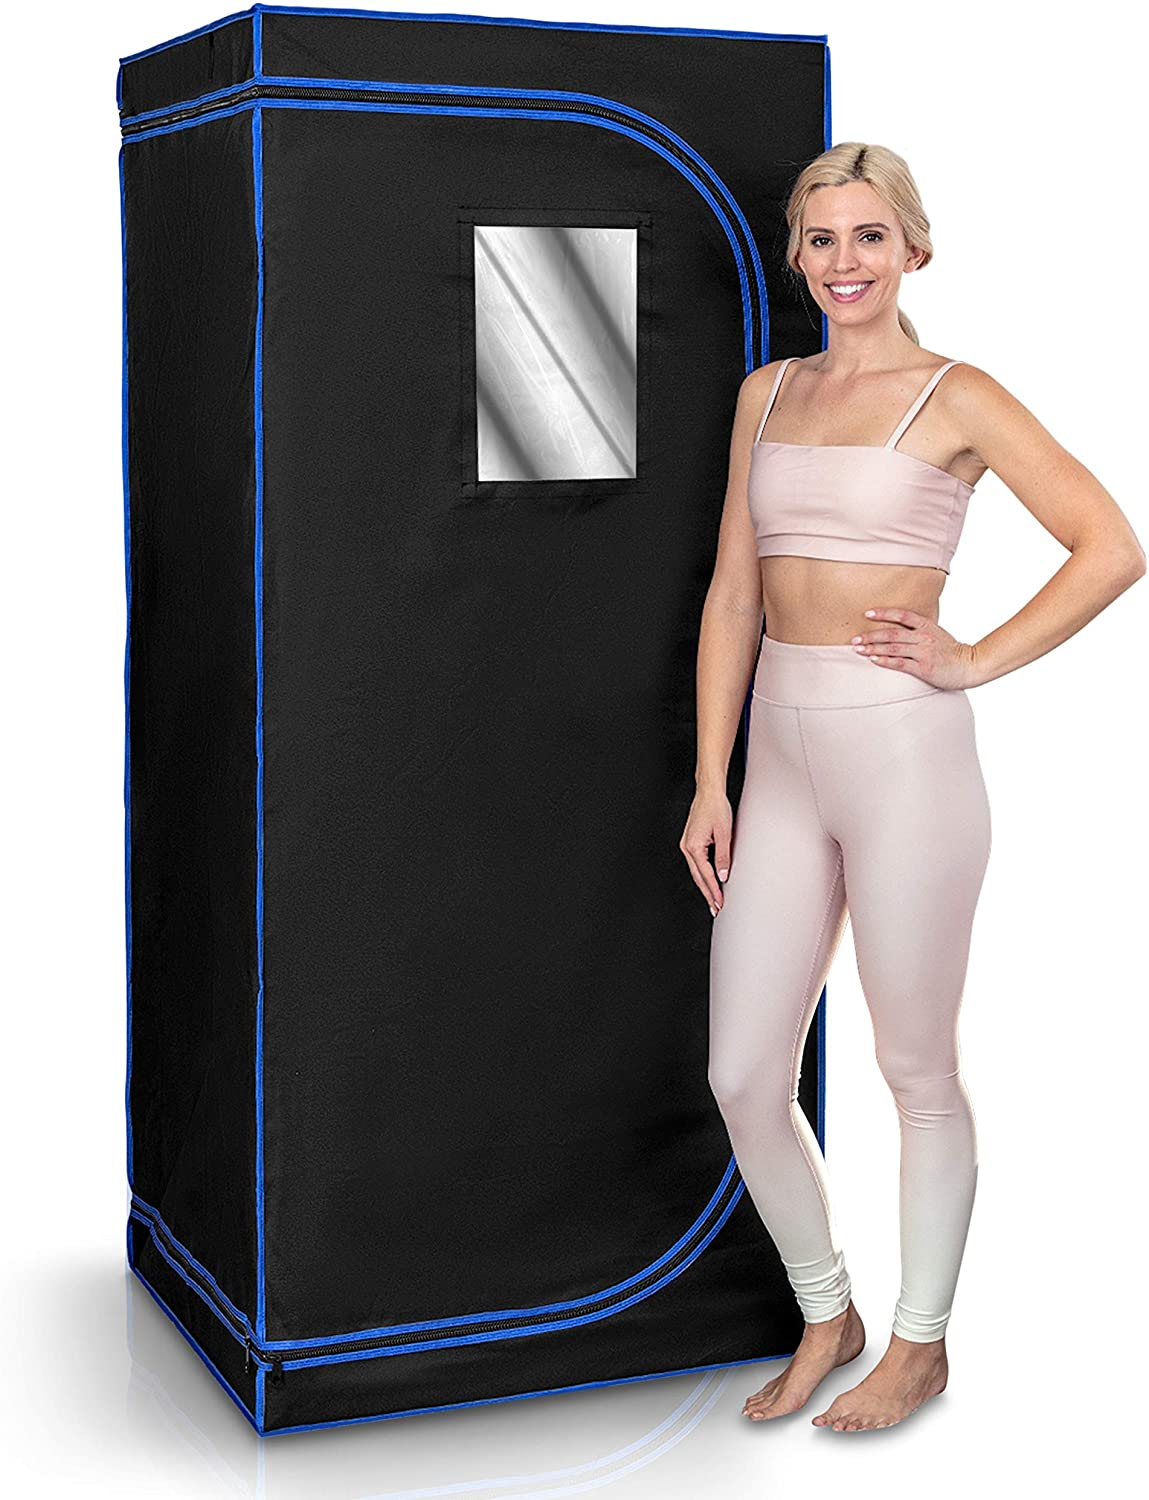 ATTACHMENT DETAILS SereneLife-Portable-Full-Size-Infrared-Home-Spa